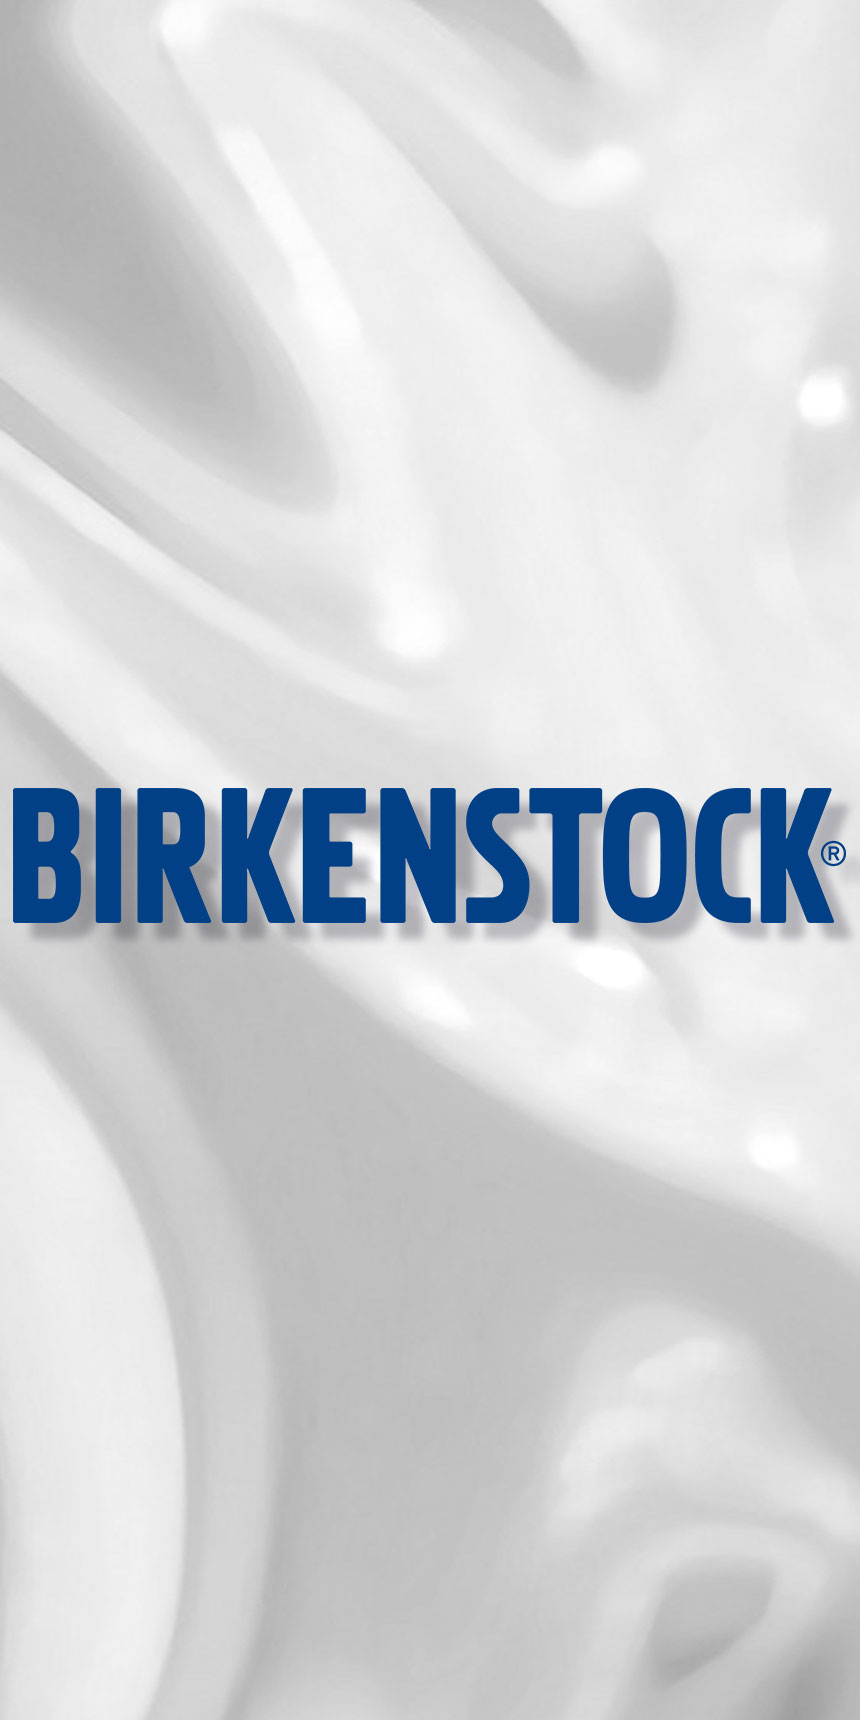 Step Up Your Style With Birkenstock